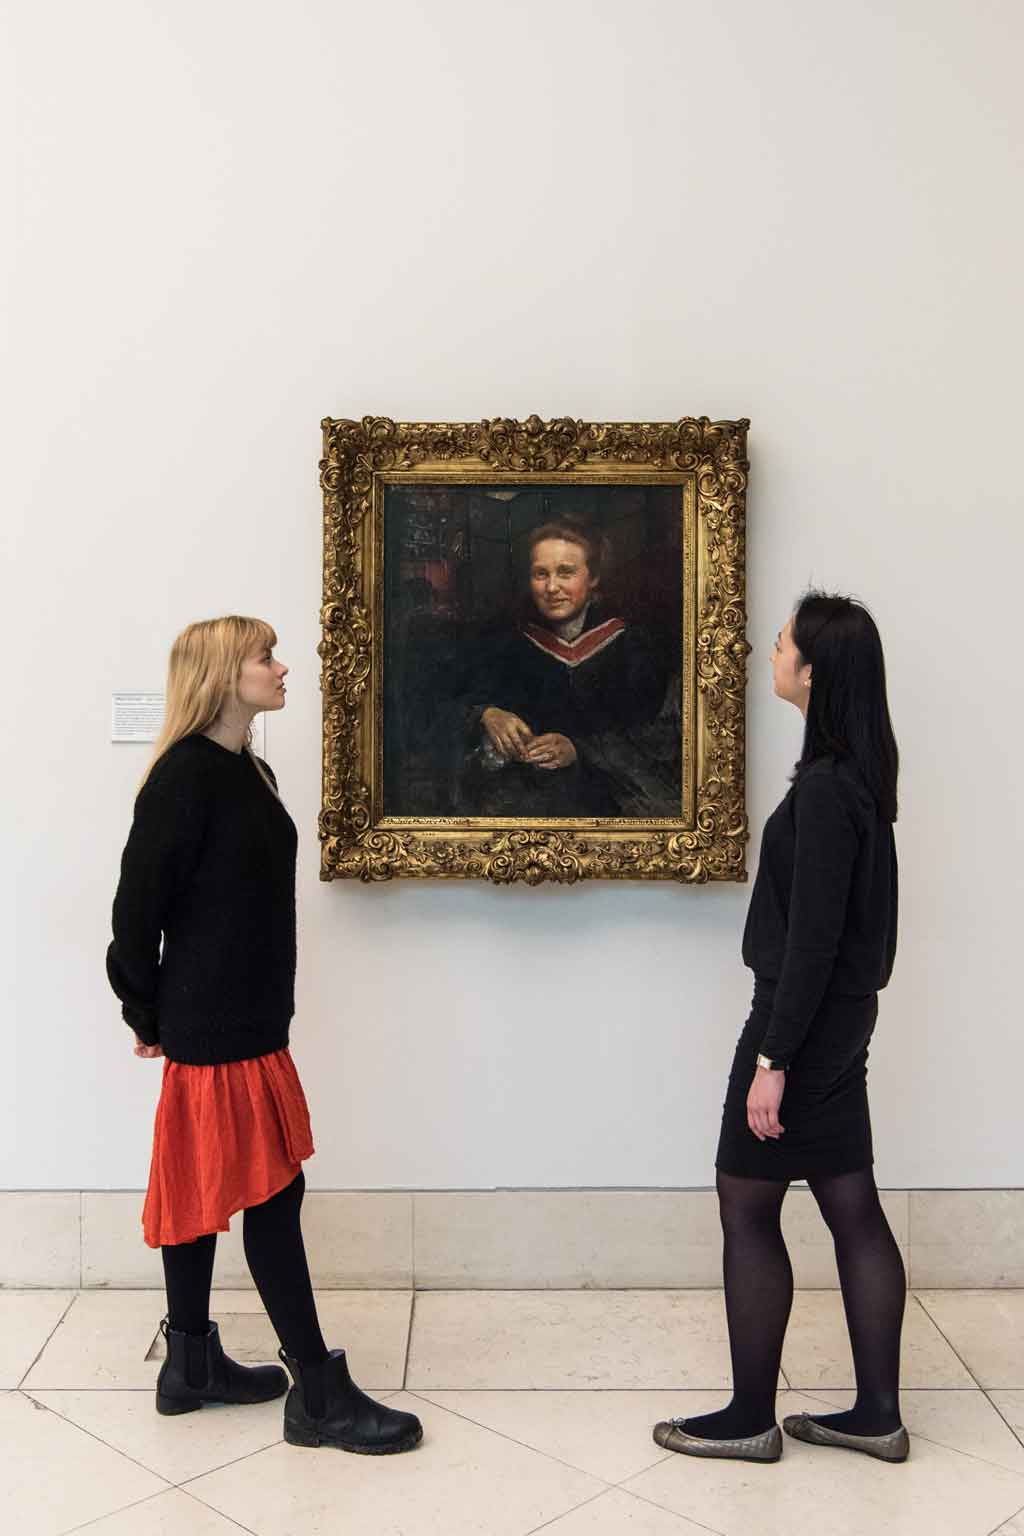 An installation view at Tate Britain, London, of the portrait by Annie Louisa Swynnerton, <em>Dame Millicent Fawcett, C.B.E., LL.D. ,</em> oil paint on canvas, 1120 x 1030 mm. The portrait is believed to have been painted around 1899 and was first exhibited in 1930. Tate collection, presented by the Trustees of the Chantrey Bequest 1930. Installation photo © Tate, by Joe Humphrys